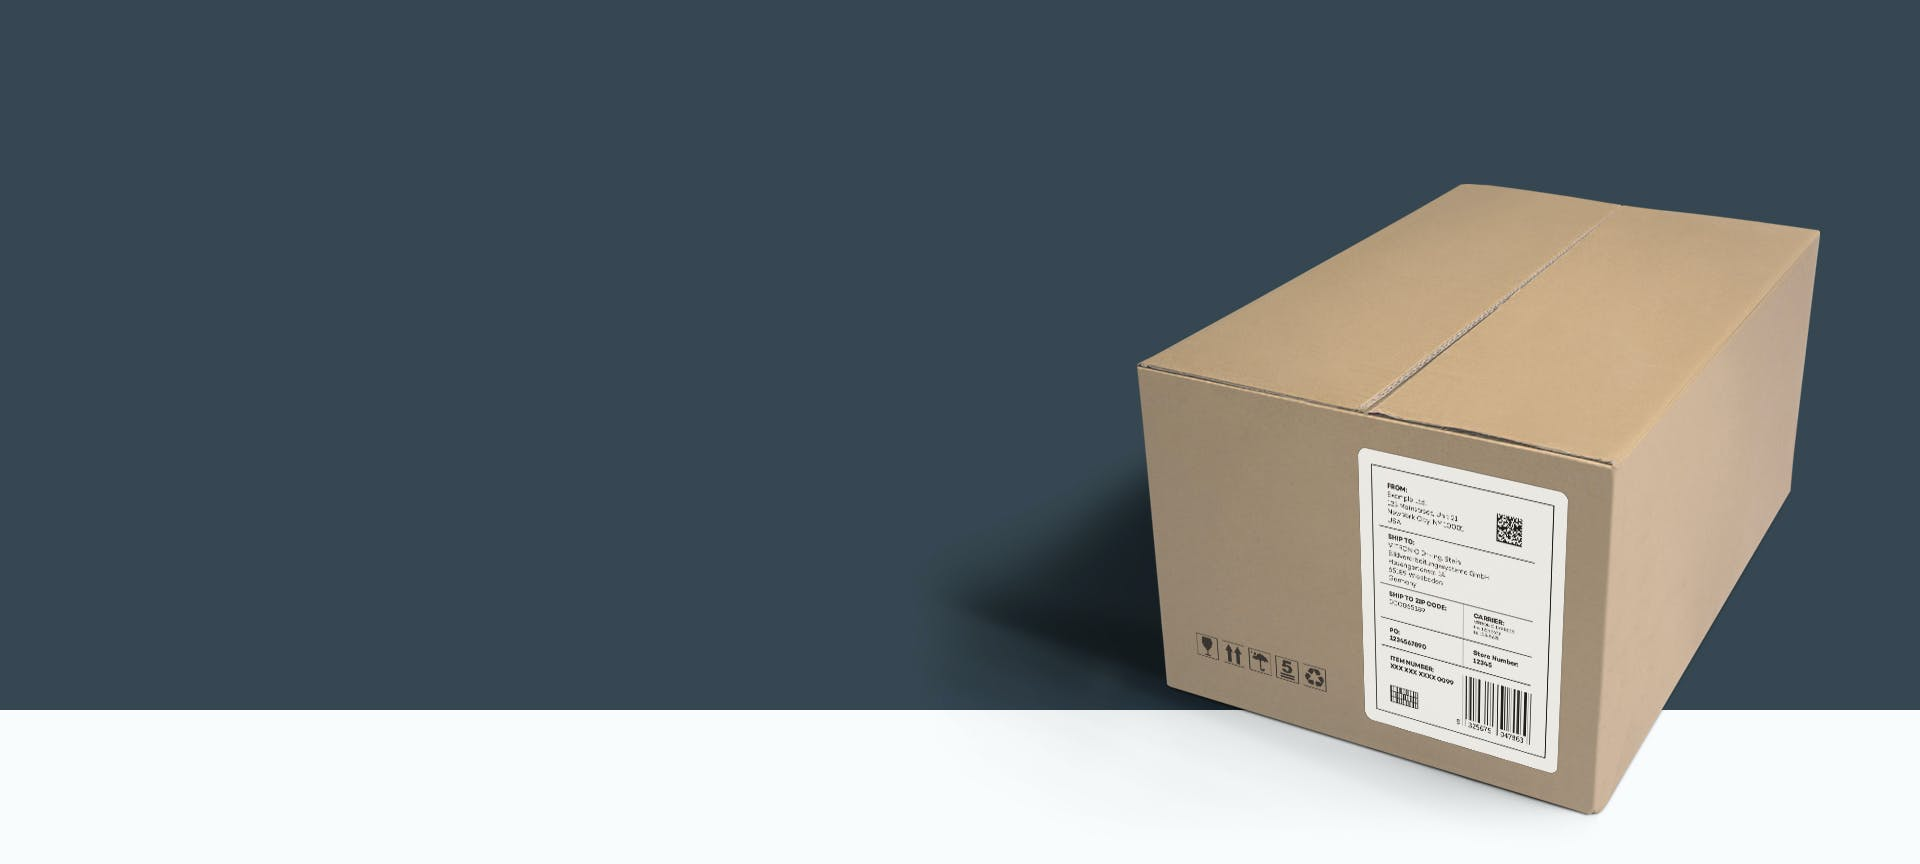 A package with an address label in front of a grey background